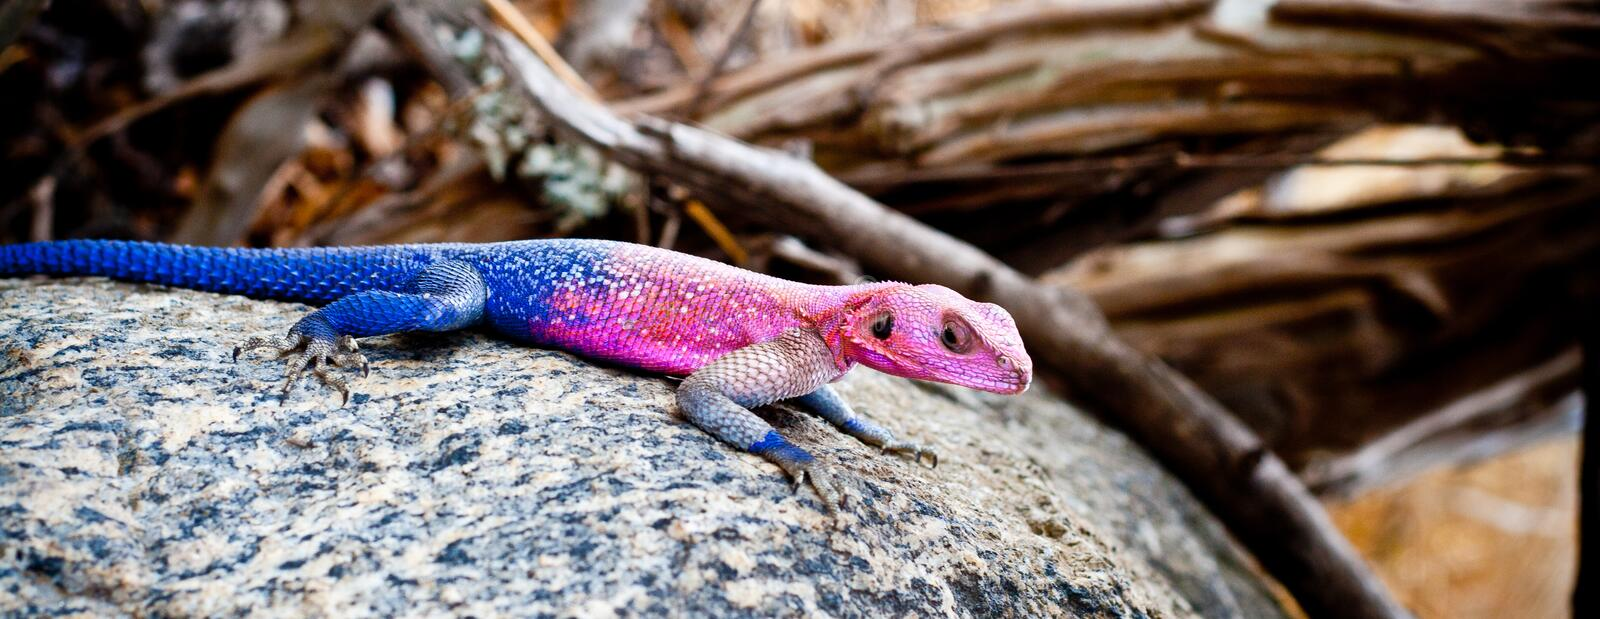 Colorful African Rock Agama lizard royalty free stock photos